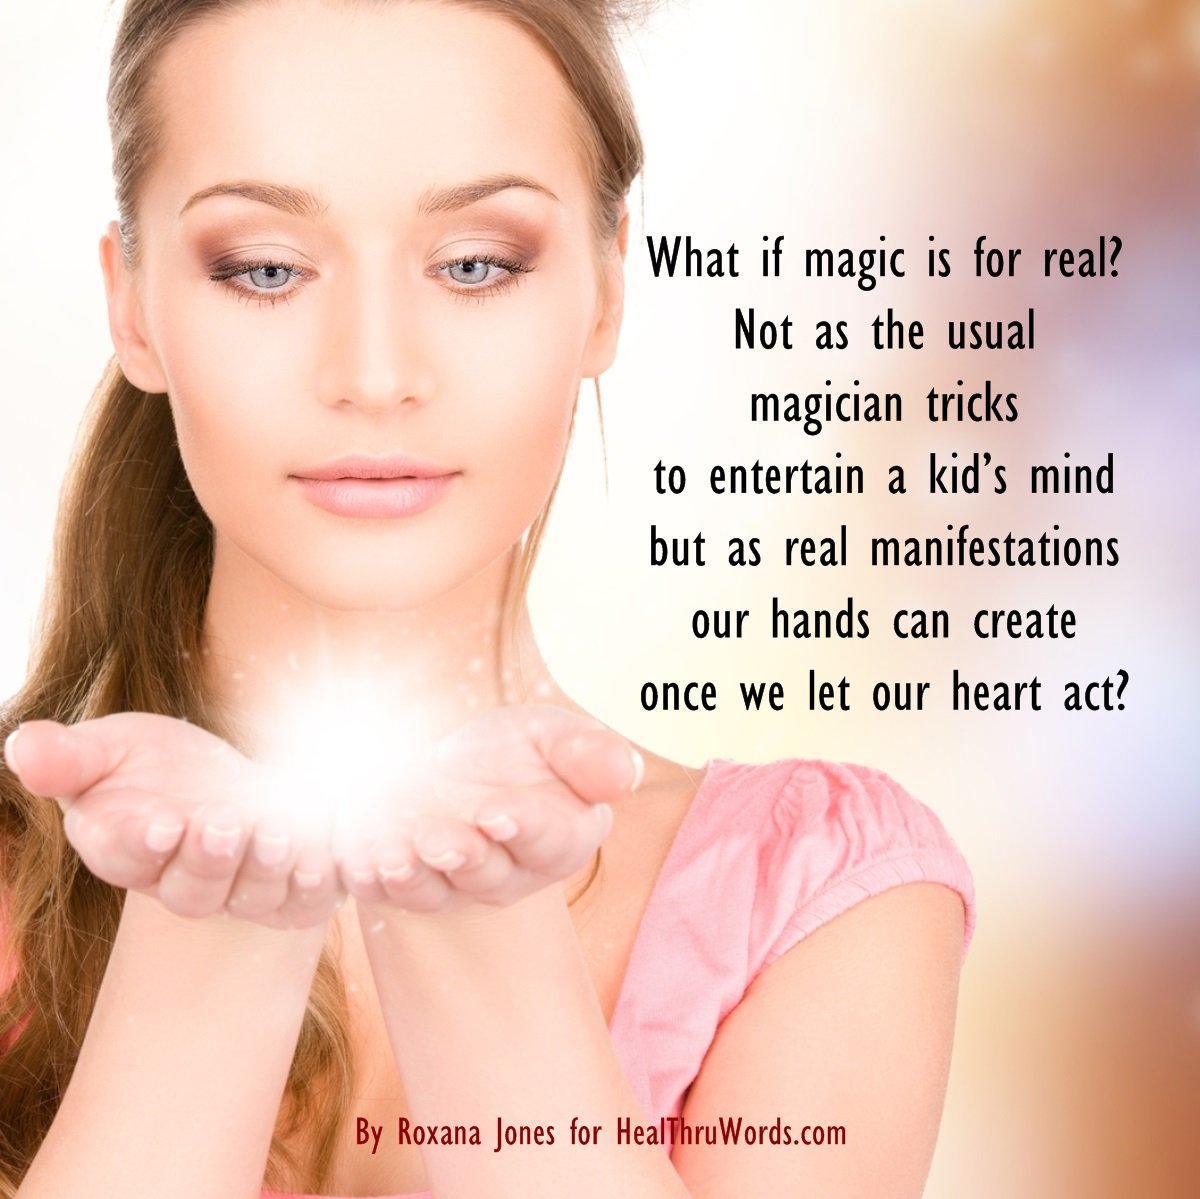 Inspirational Image: Magic